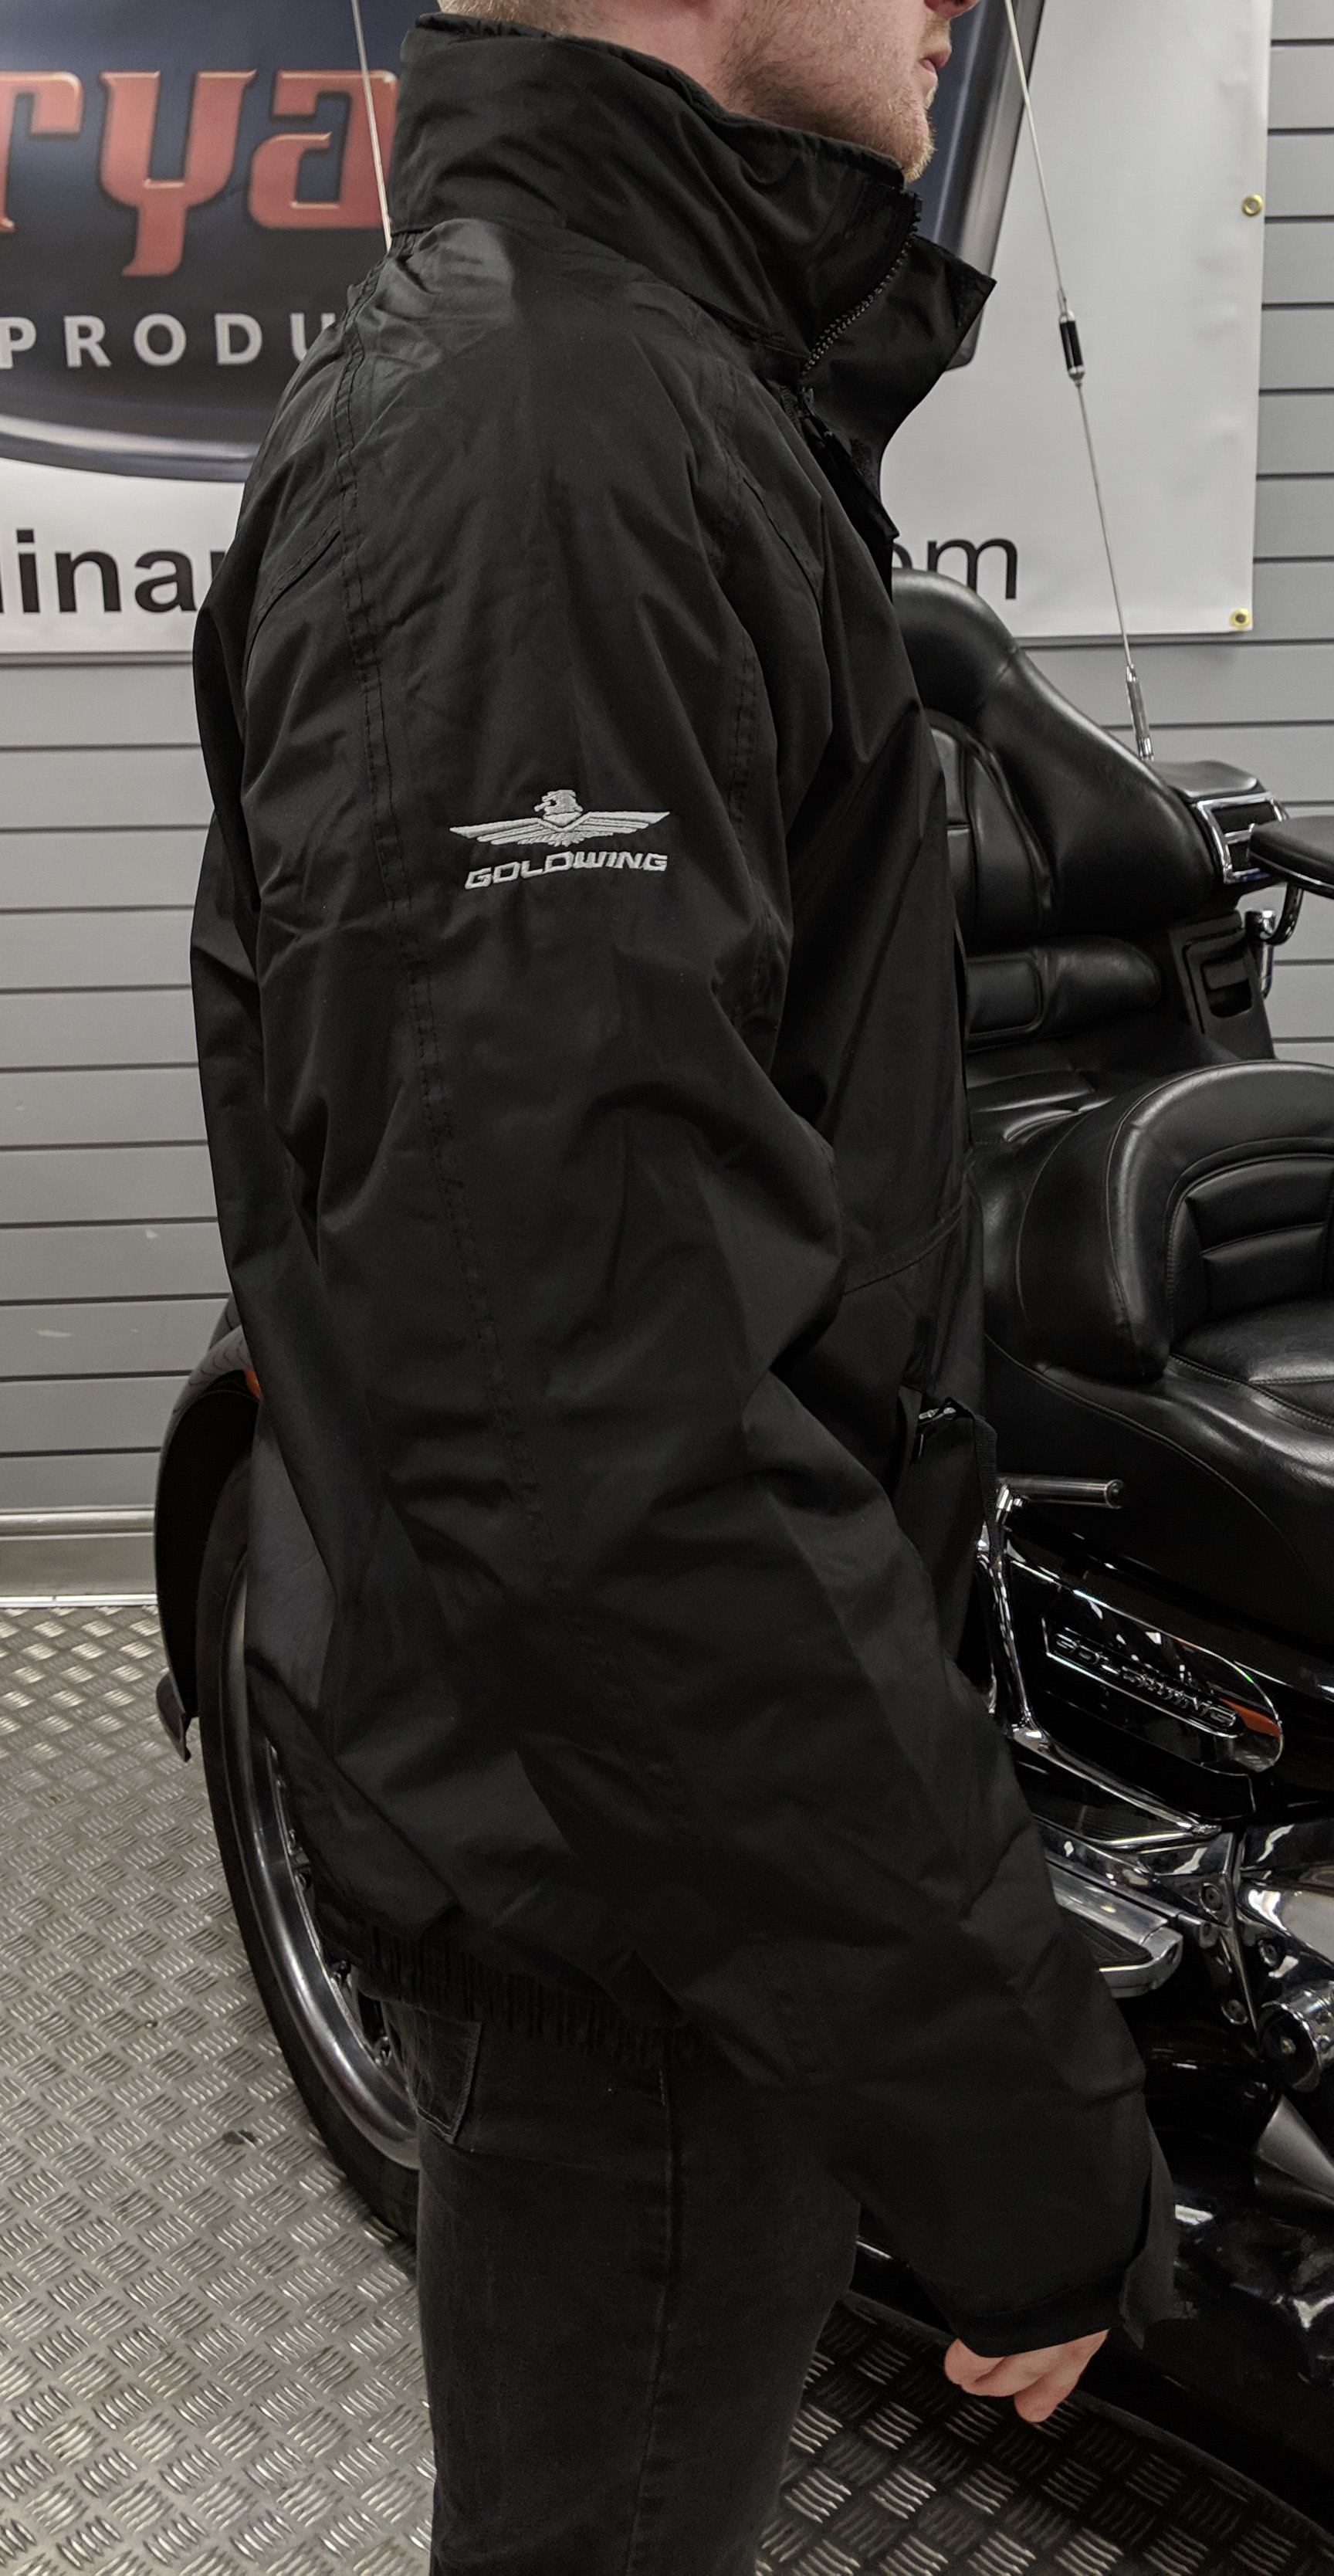 Honda Gold Wing Dover Jackets